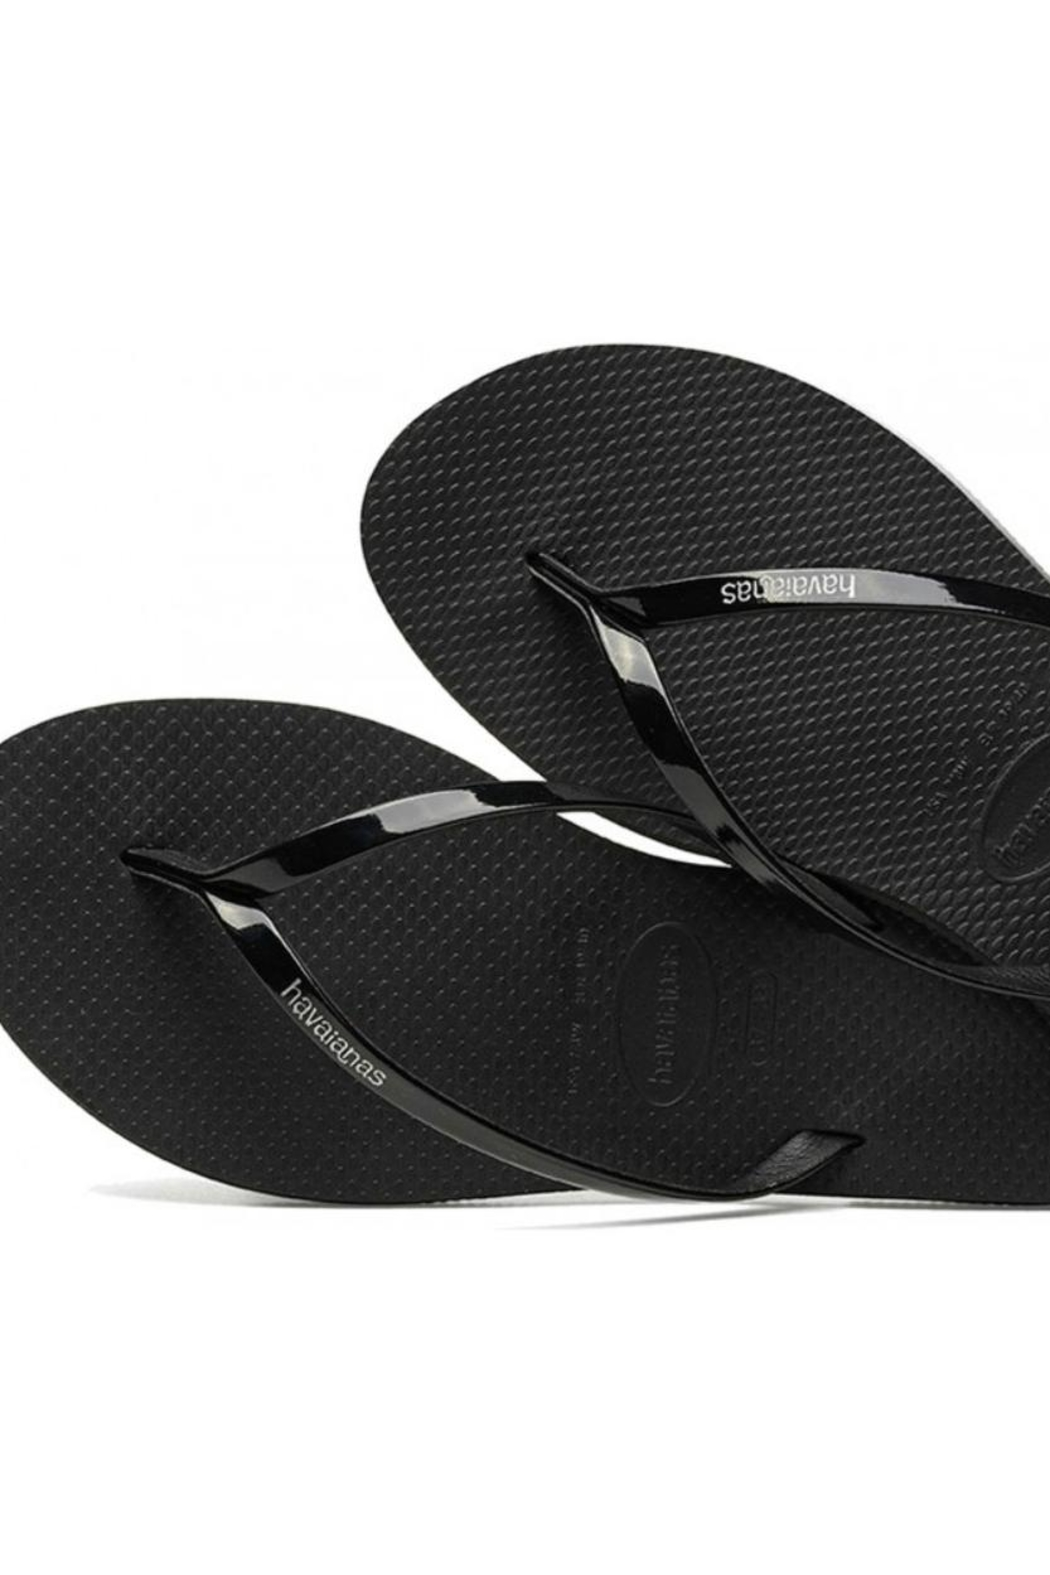 Havaianas Black Metallic Flipflops - Main Image